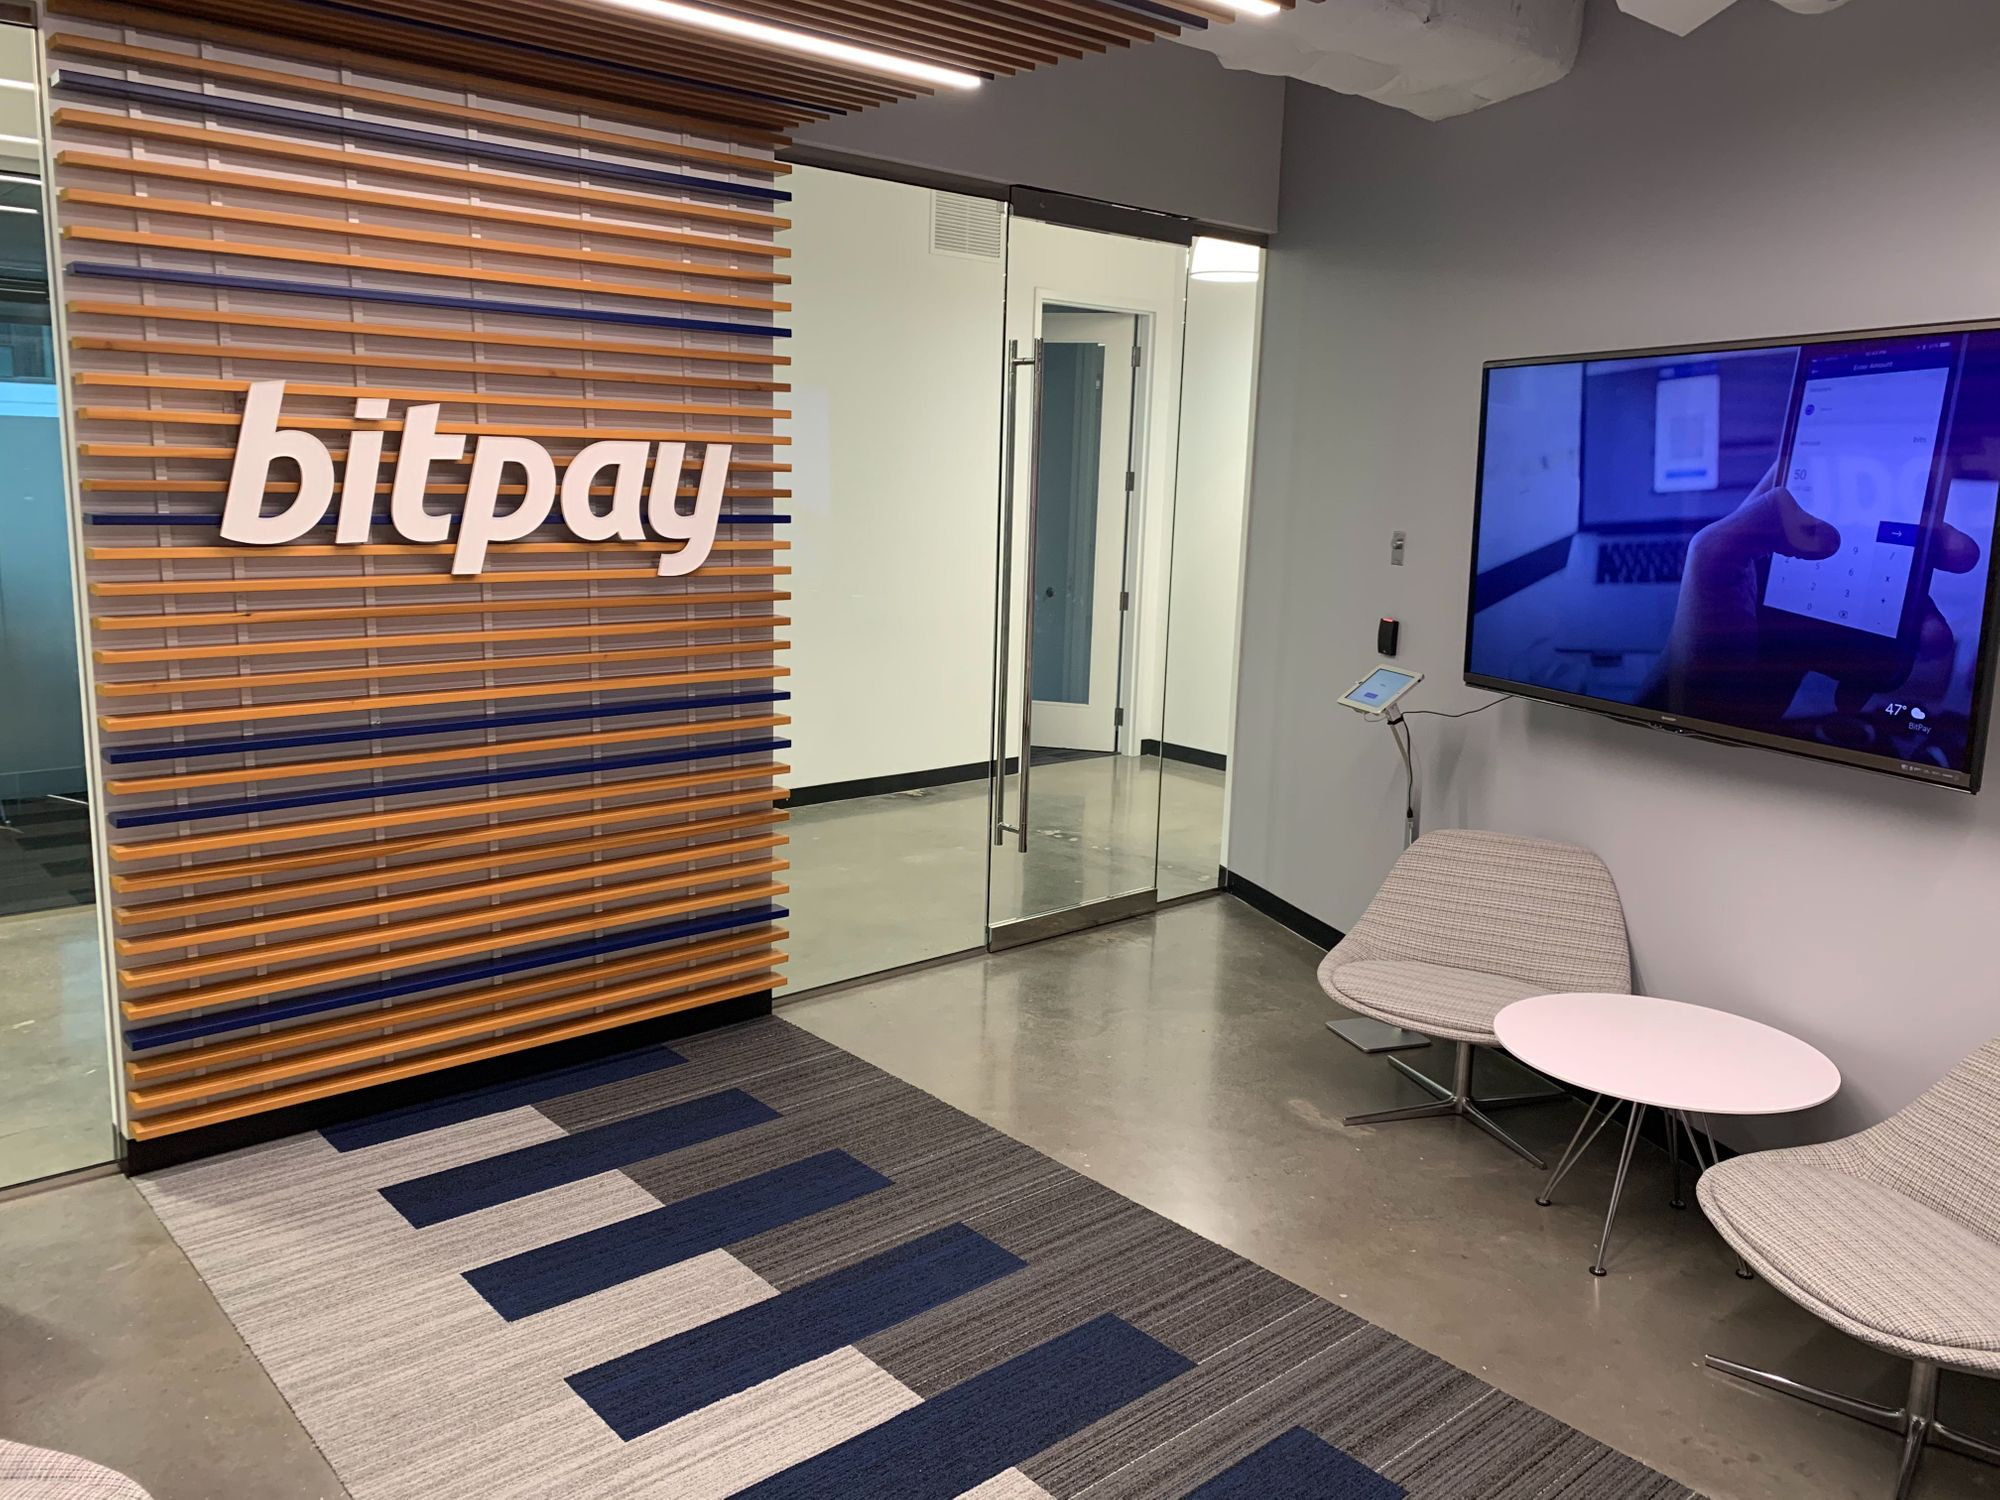 BitPay's Response to COVID-19